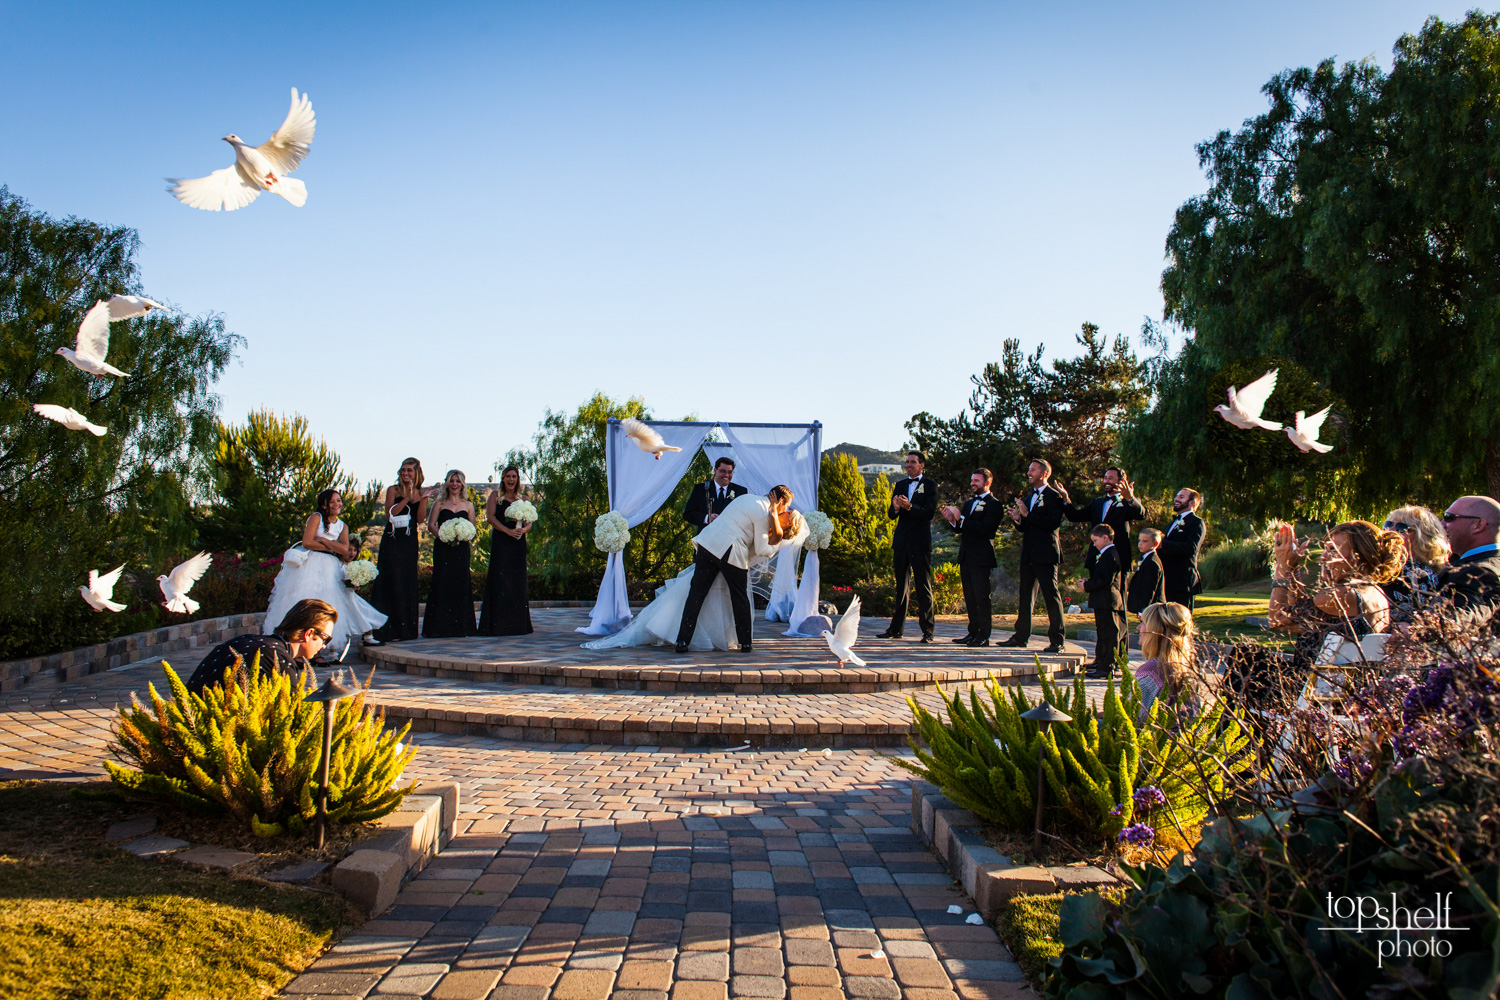 wedding-bella-collina-san-clemente-top-shelf-photo-21.jpg